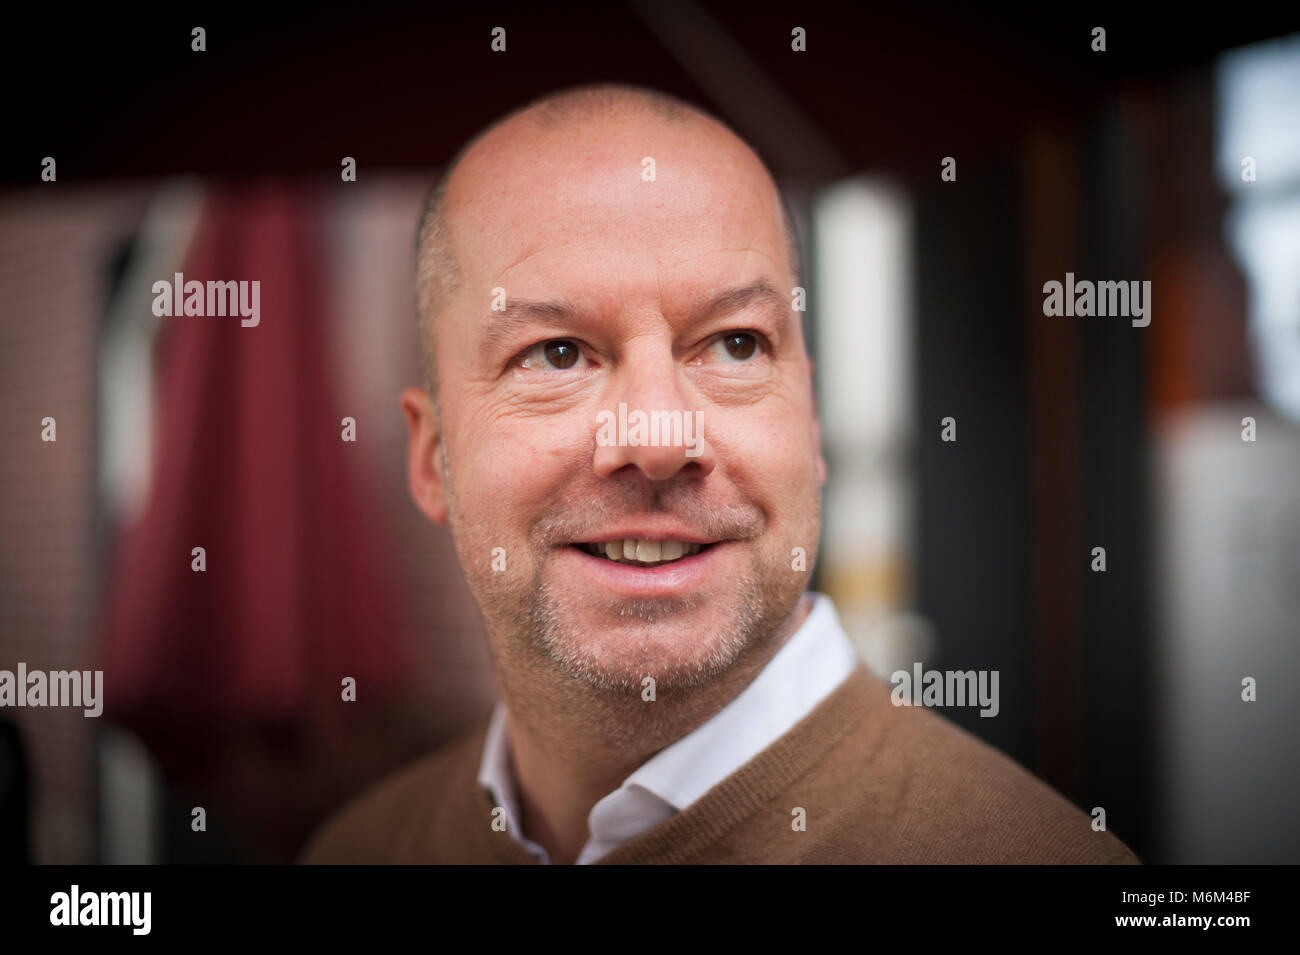 Ubbo Oltmanns Co-Chairman of Bremen's British Chamber of Commerce in Bremen, Germany. - Stock Image